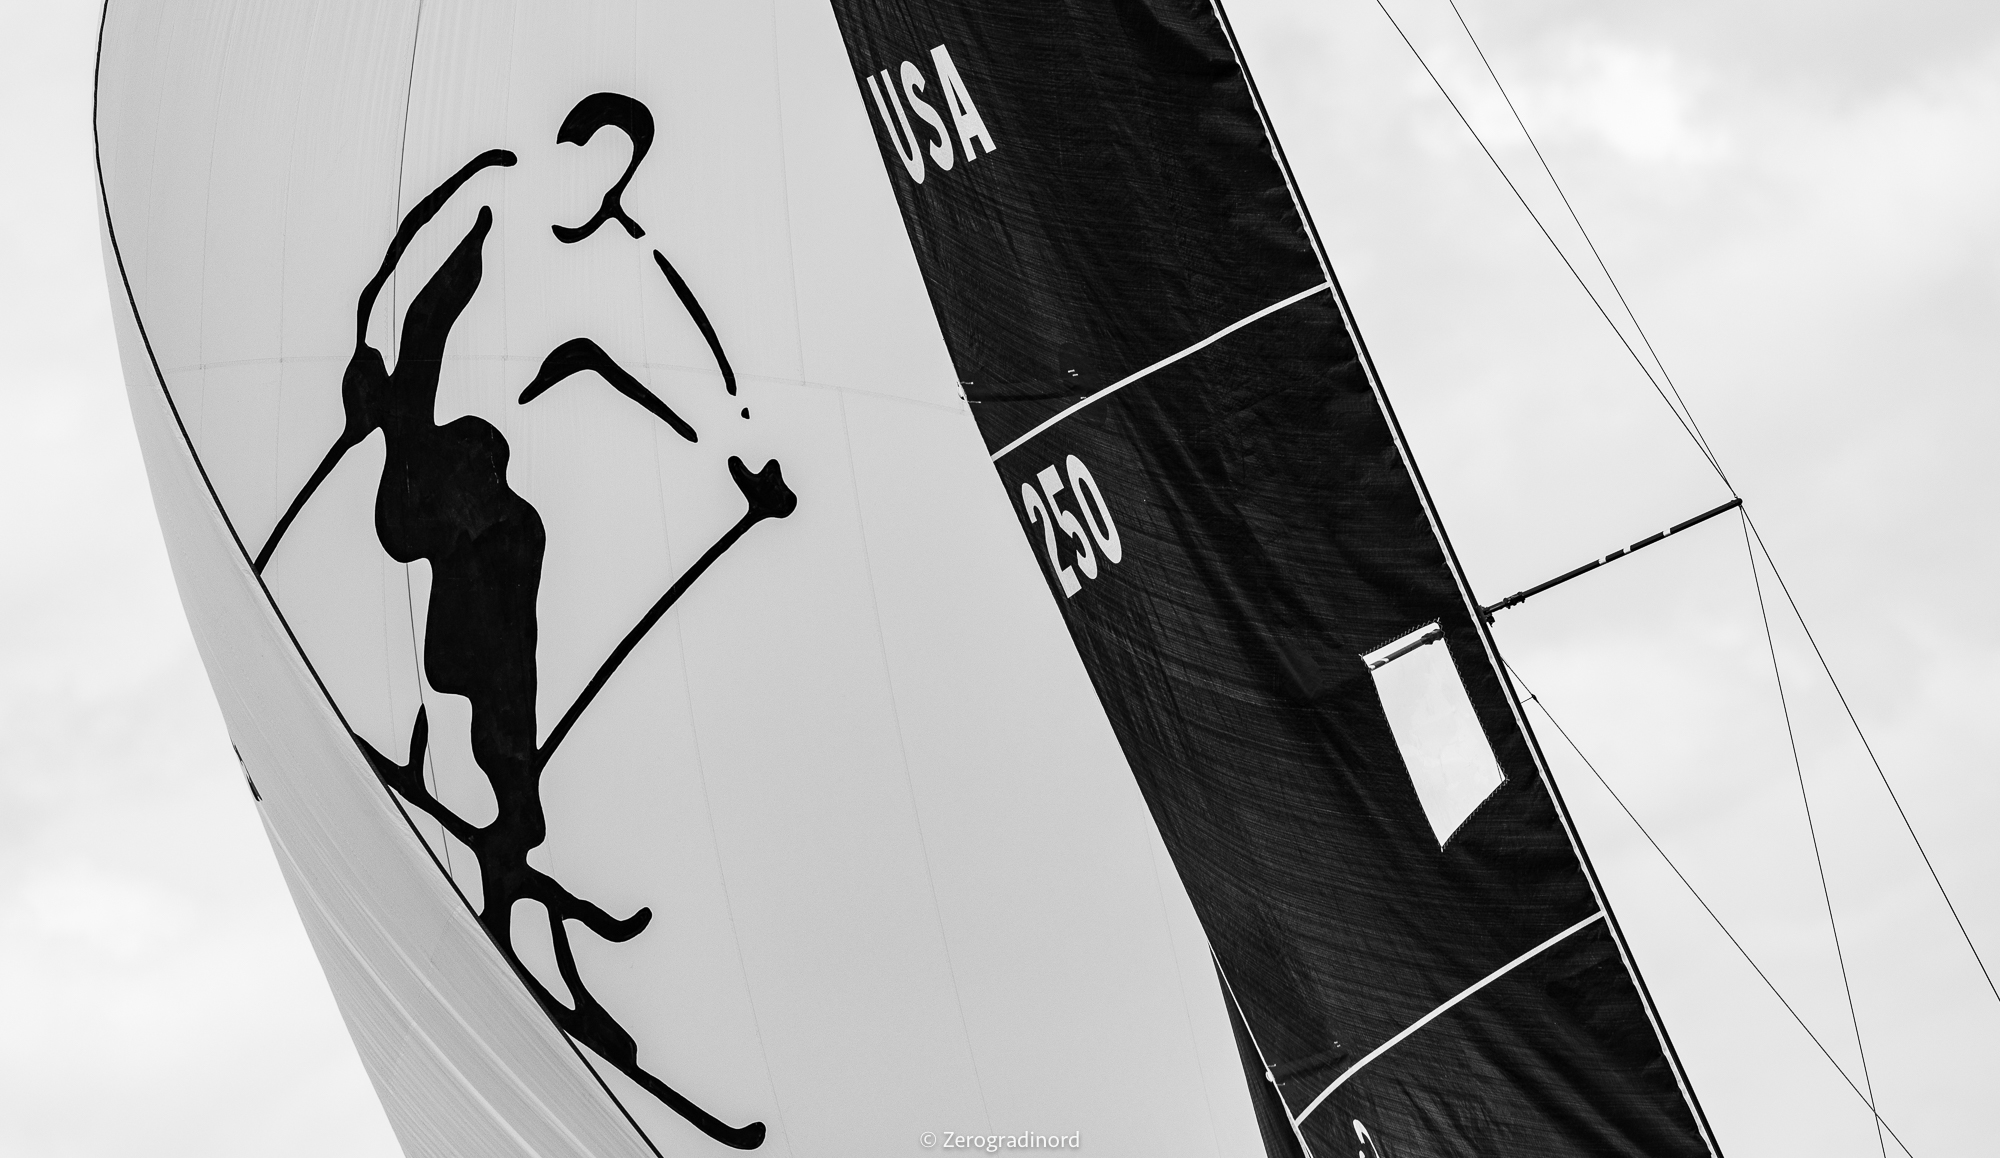 Melges20_060419_low-46.jpg